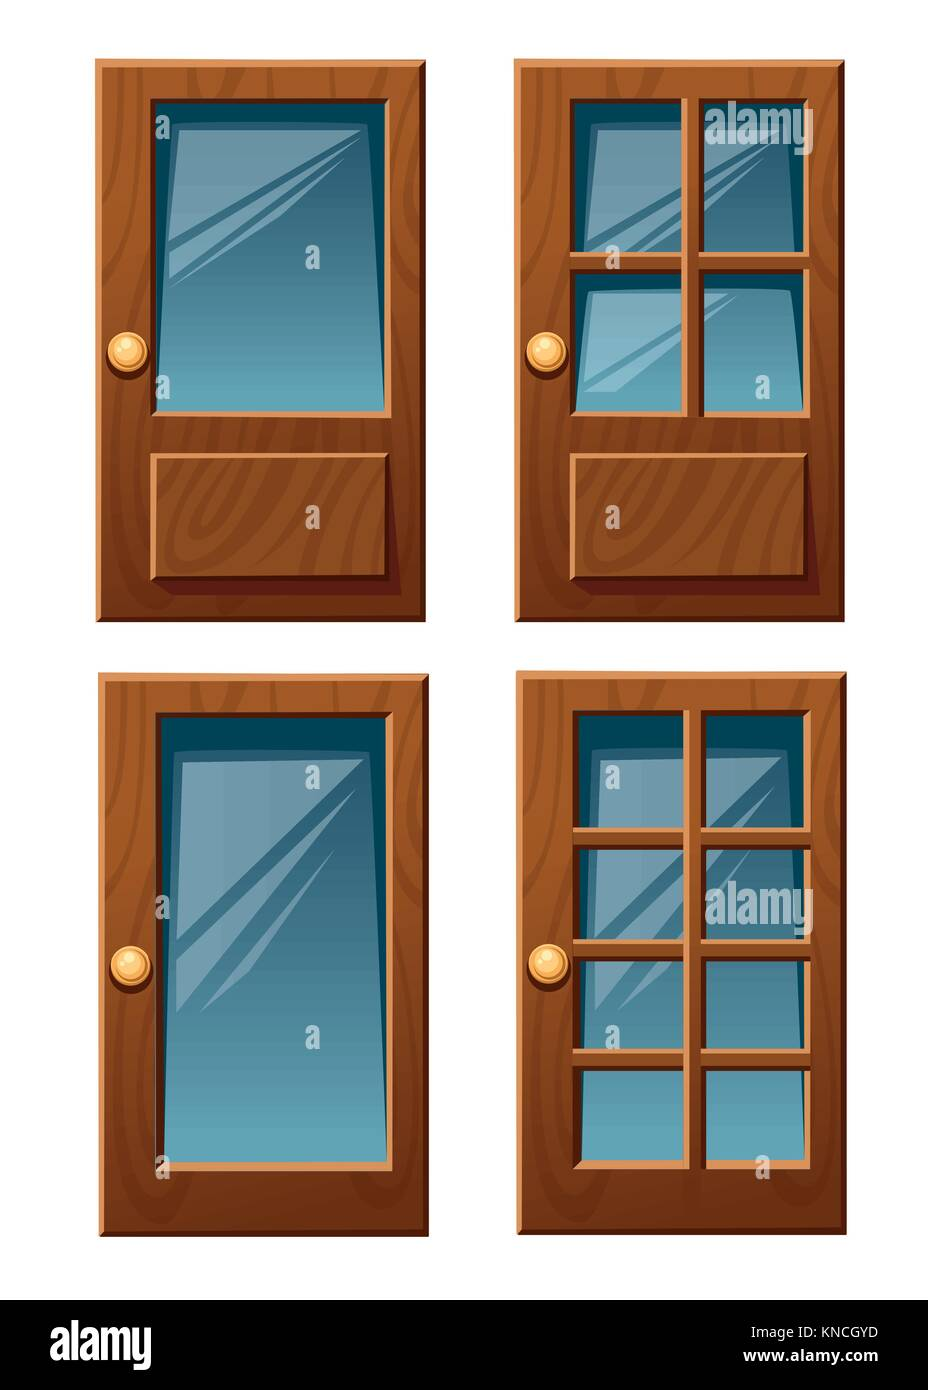 Vector collection of various wooden house doors with glass flat style vector illustration isolated on white background - Stock Image